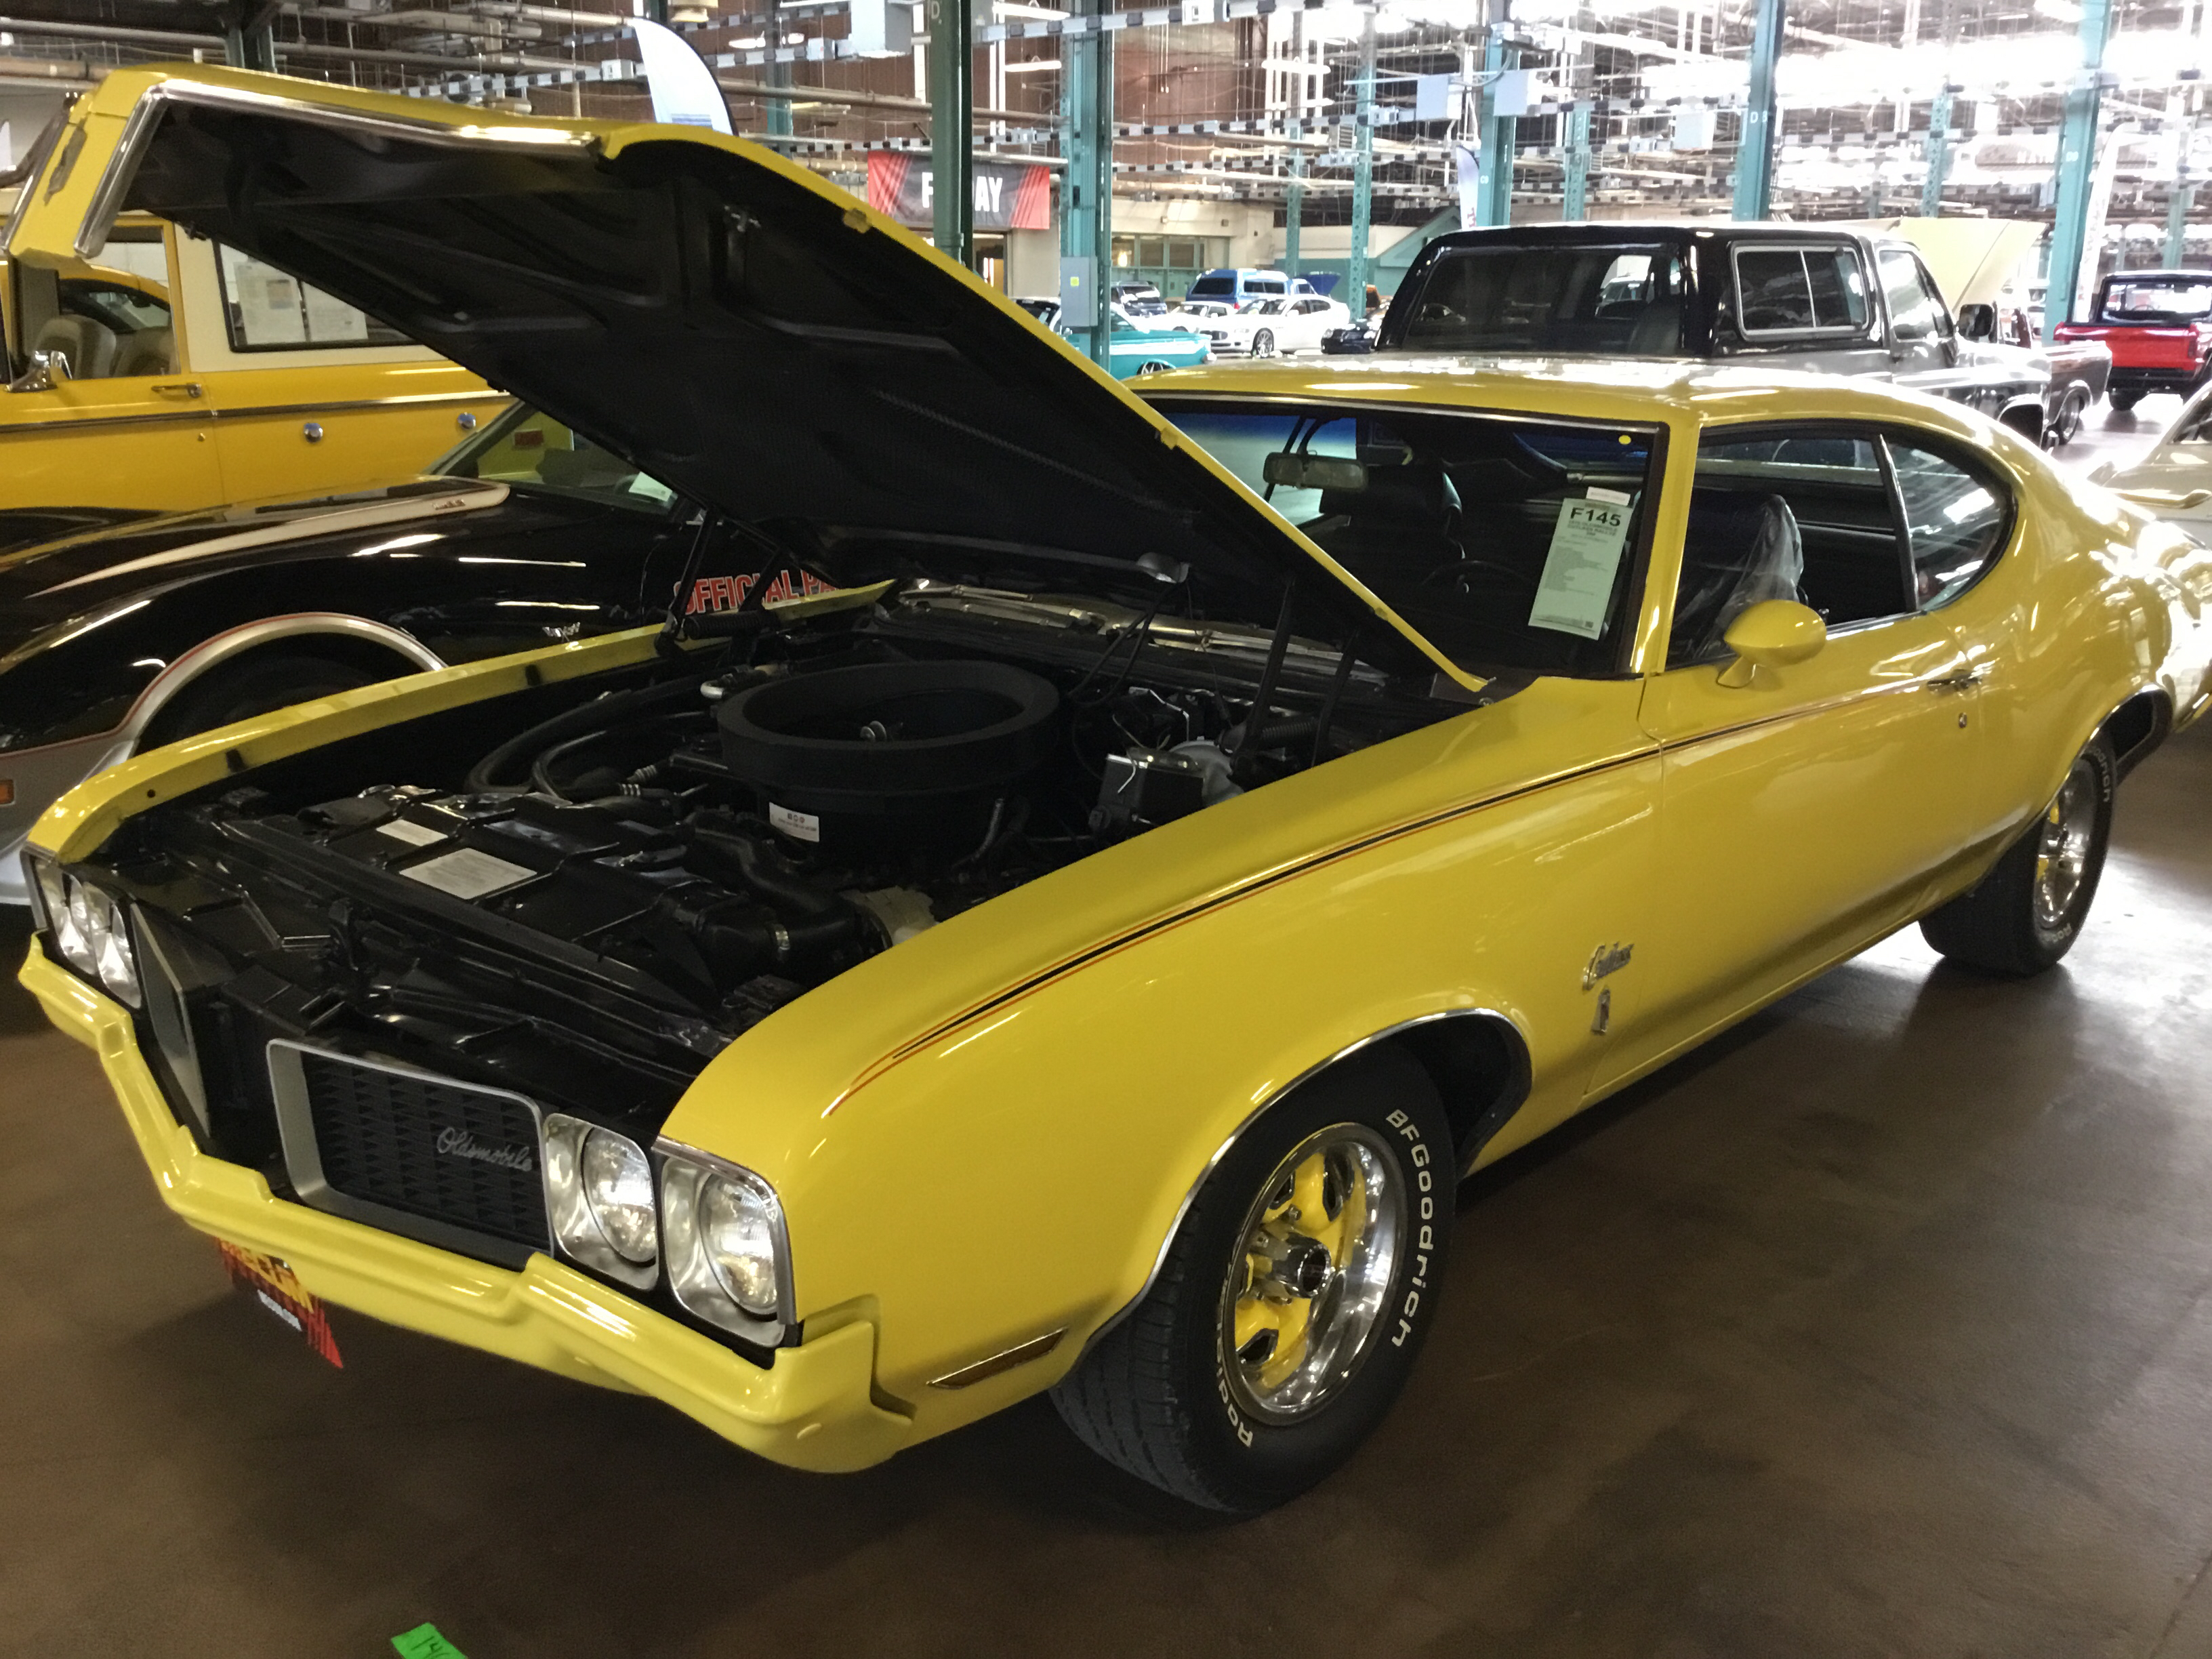 1970 Oldsmobile Cutlass Values | Hagerty Valuation Tool®